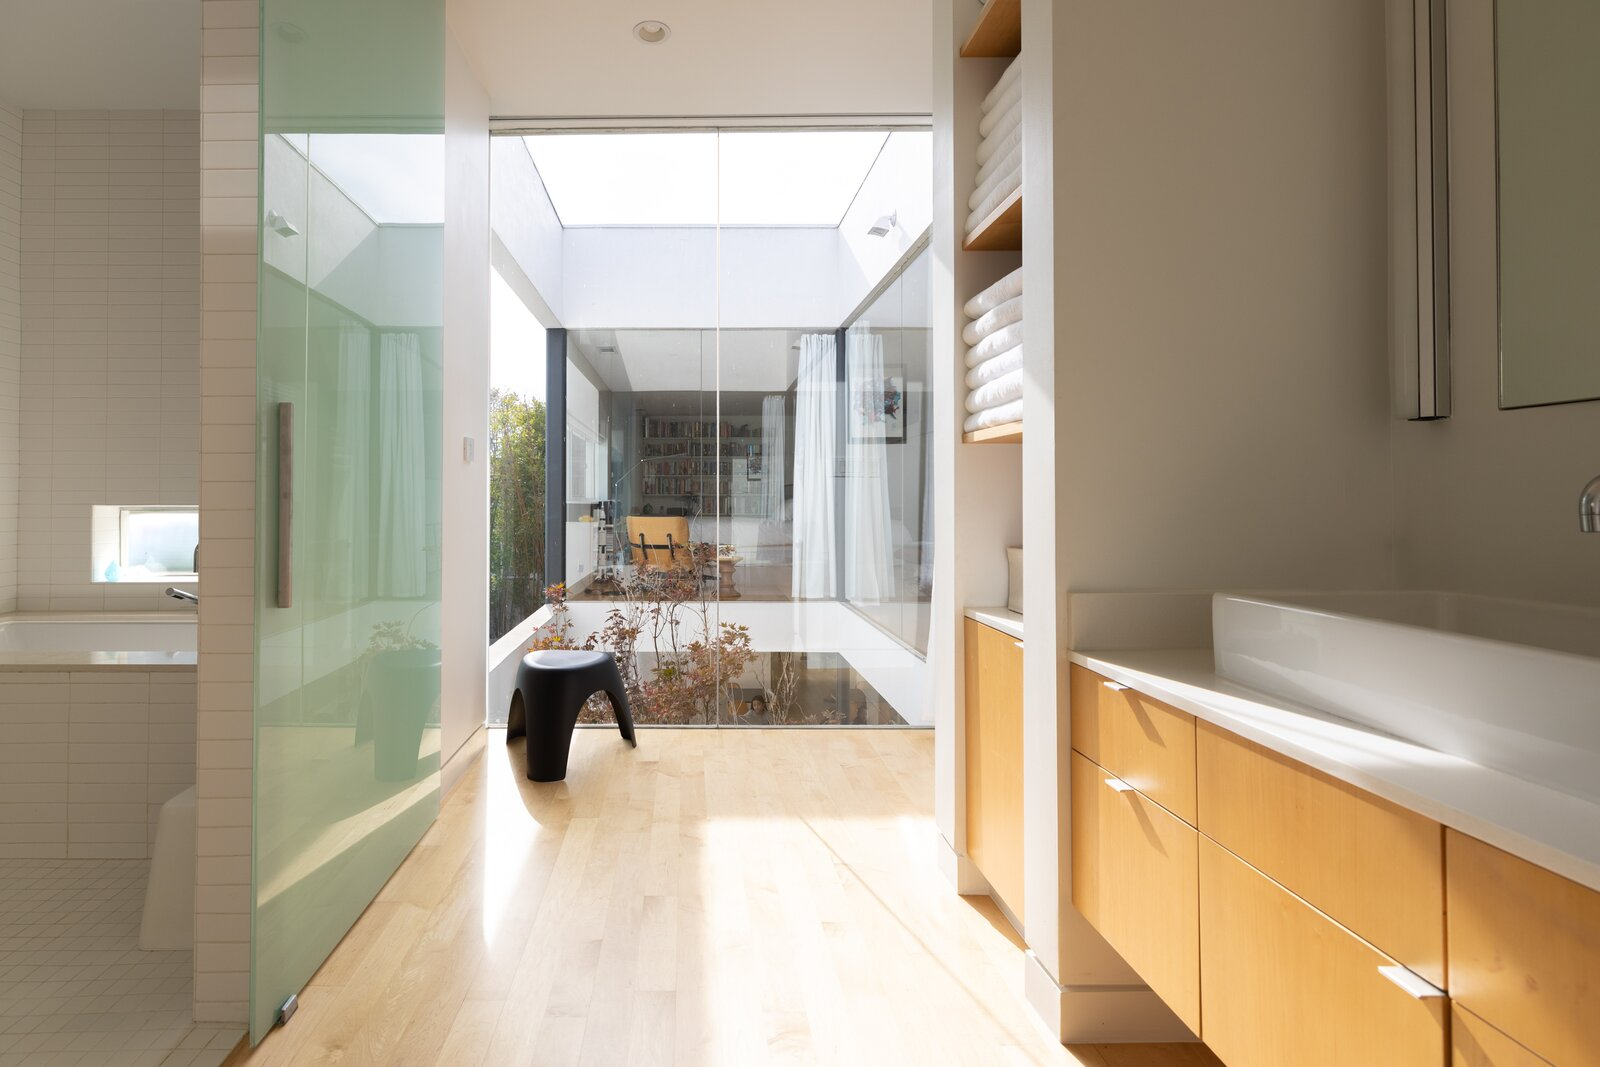 Bathroom of L House by Lee + Mundwiler Architects